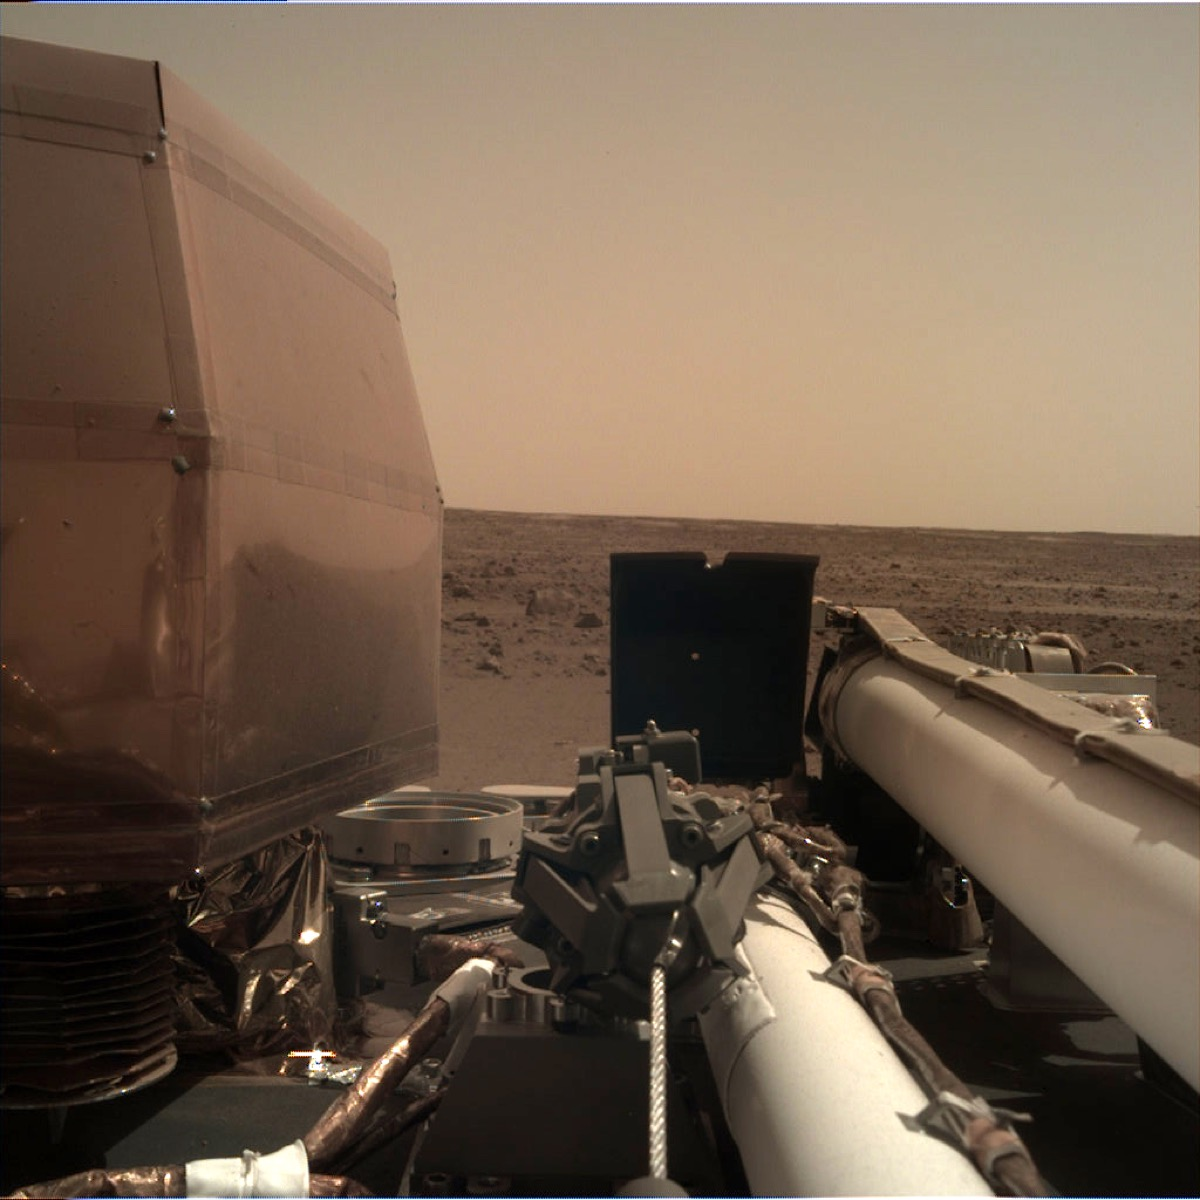 Lander arm underneath red martian sky